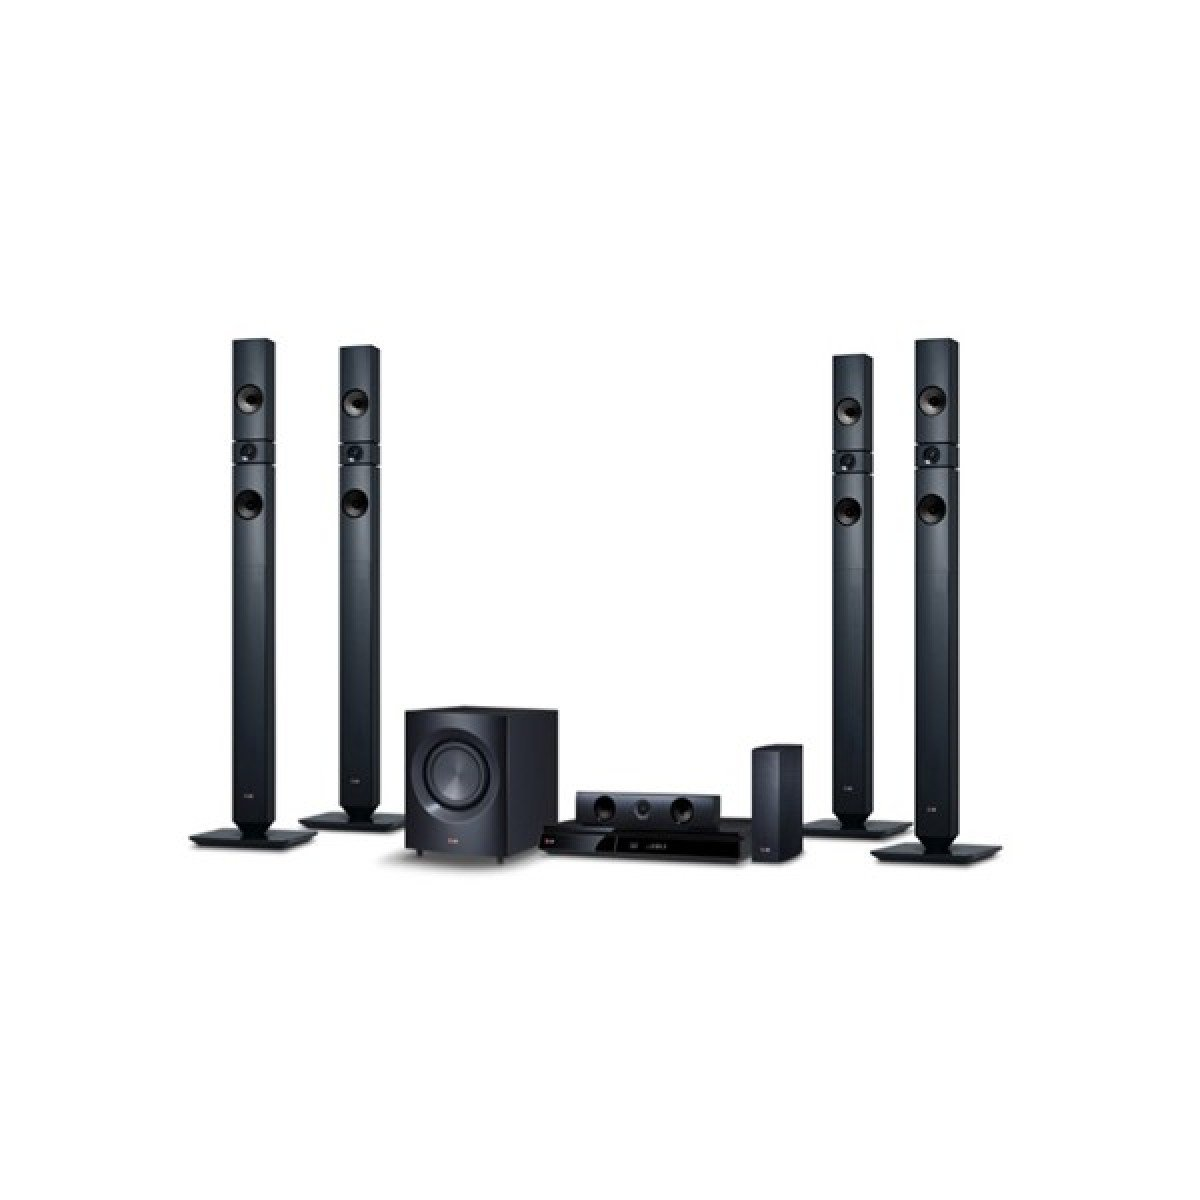 LG LHD457 Bluetooth Multi Region Free 5.1-Channel DVD Home Theater Speaker System w/ Free HDMI Cable, 110-240v